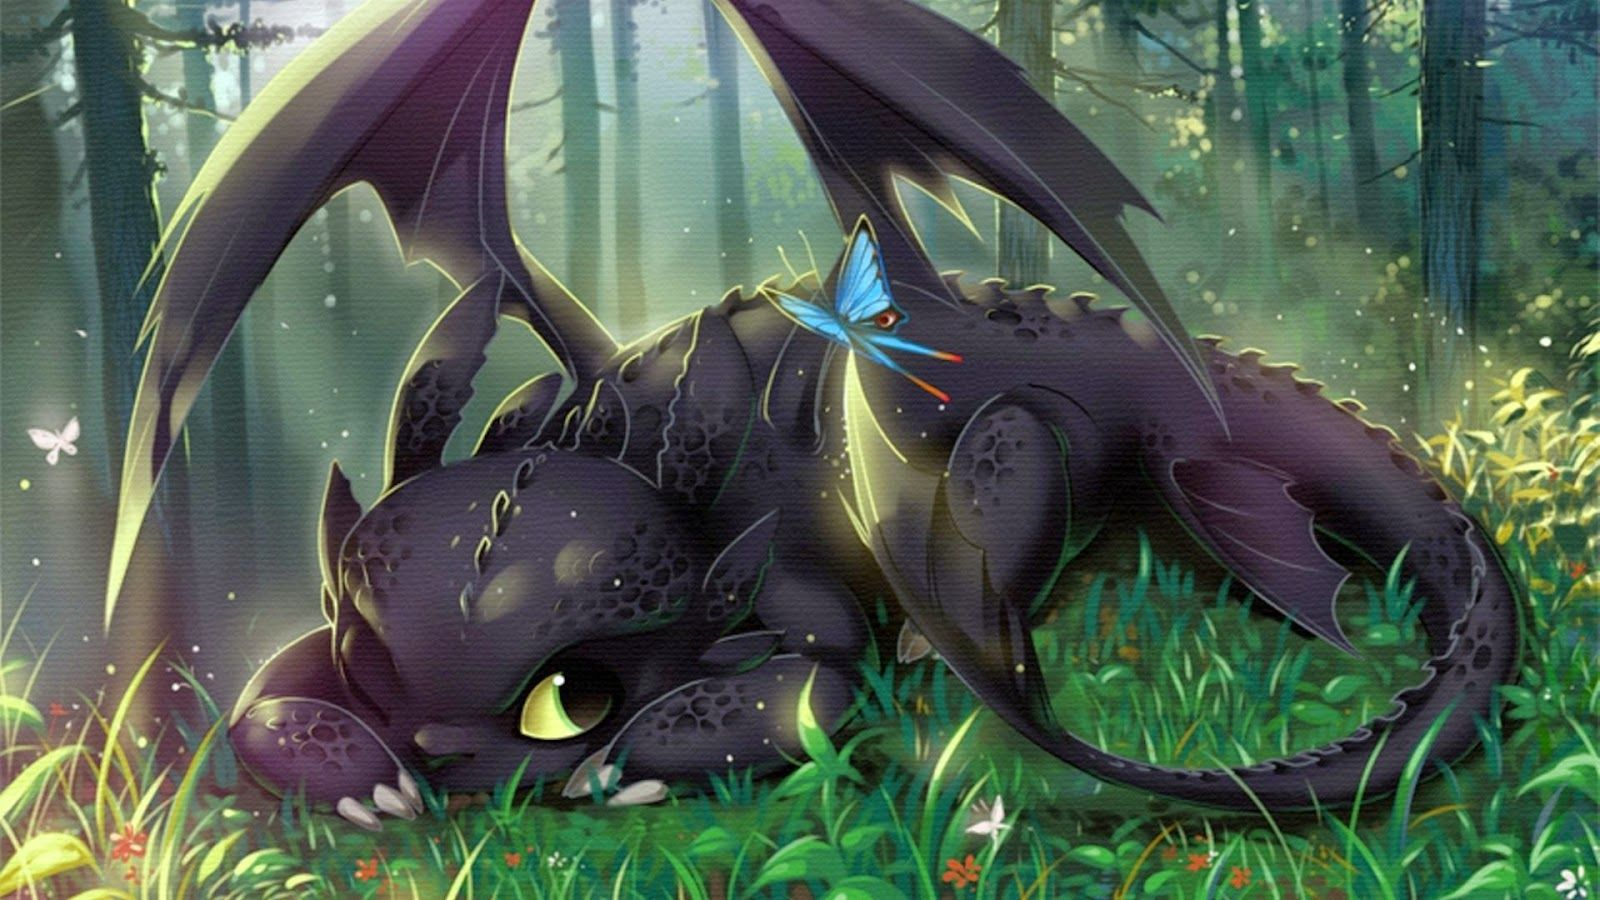 If The Movie Also Reveals The Secrets Of Toothless' Origins, Could The  Mysterious Absence · Httydhiccuptoothless Dragonnight Furytrain Your  Dragonhow